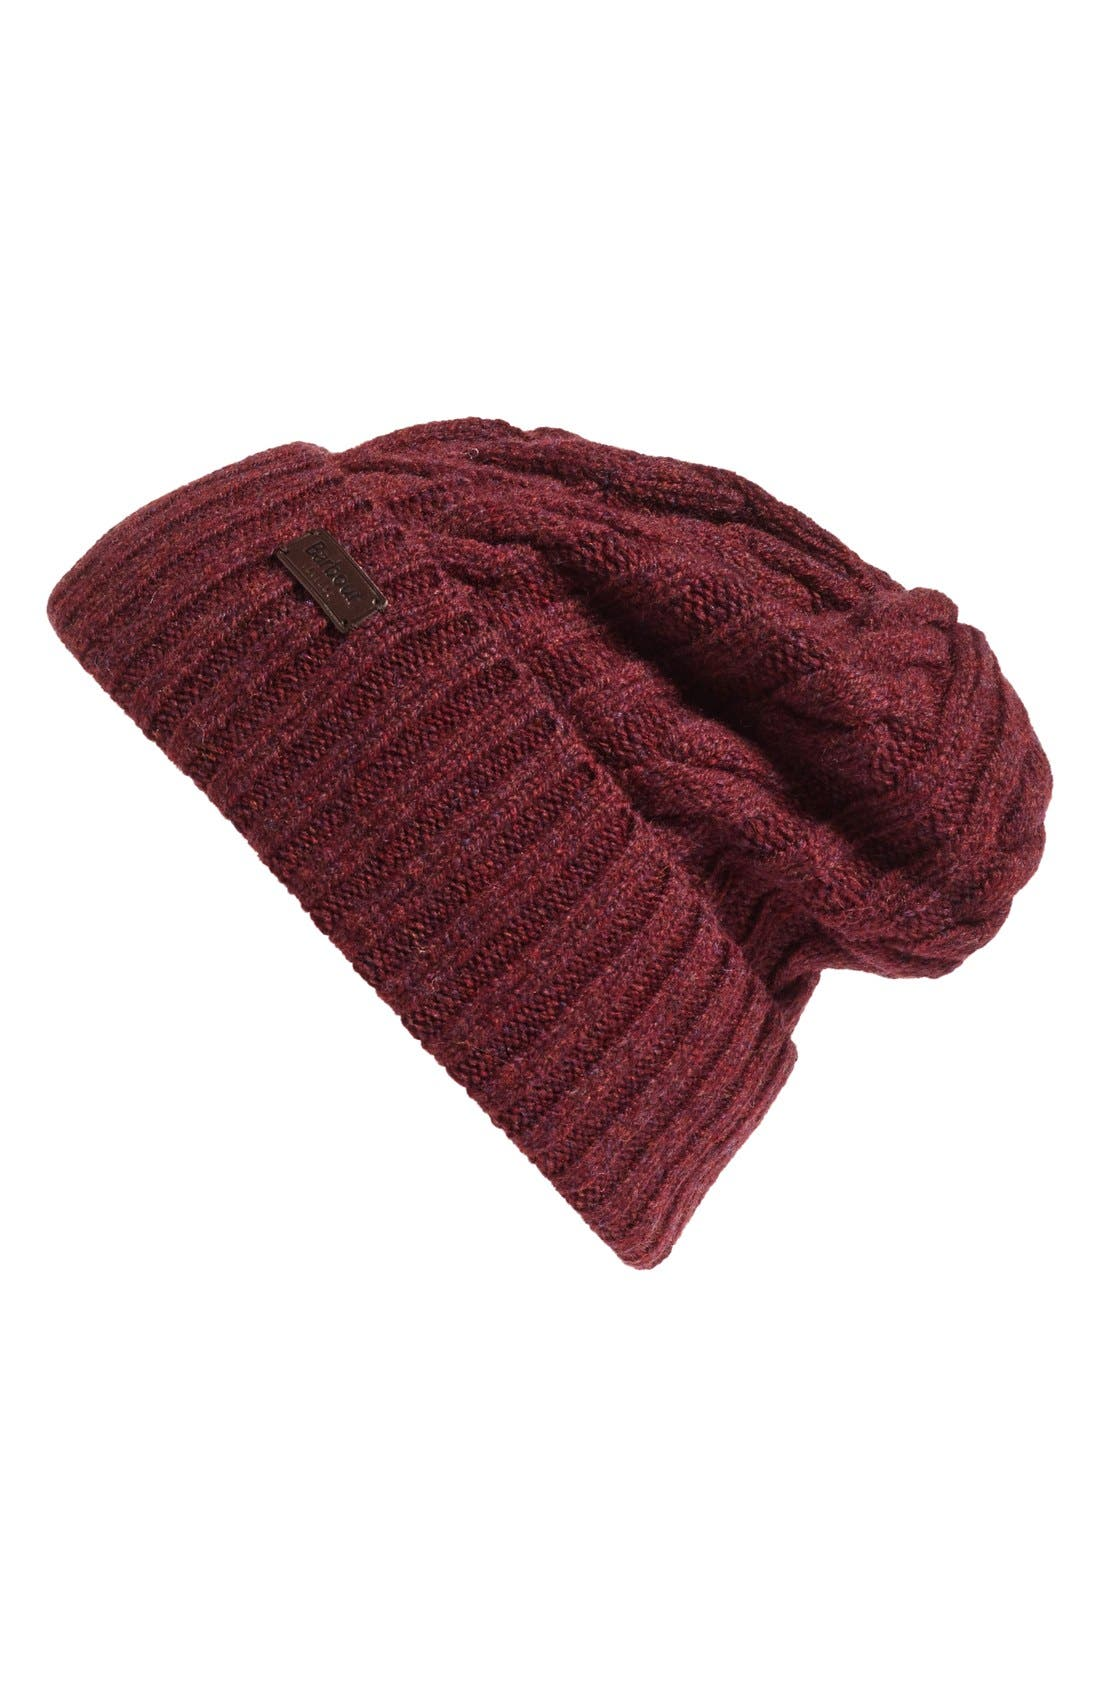 Main Image - Barbour Lambswool Cable Knit Hat